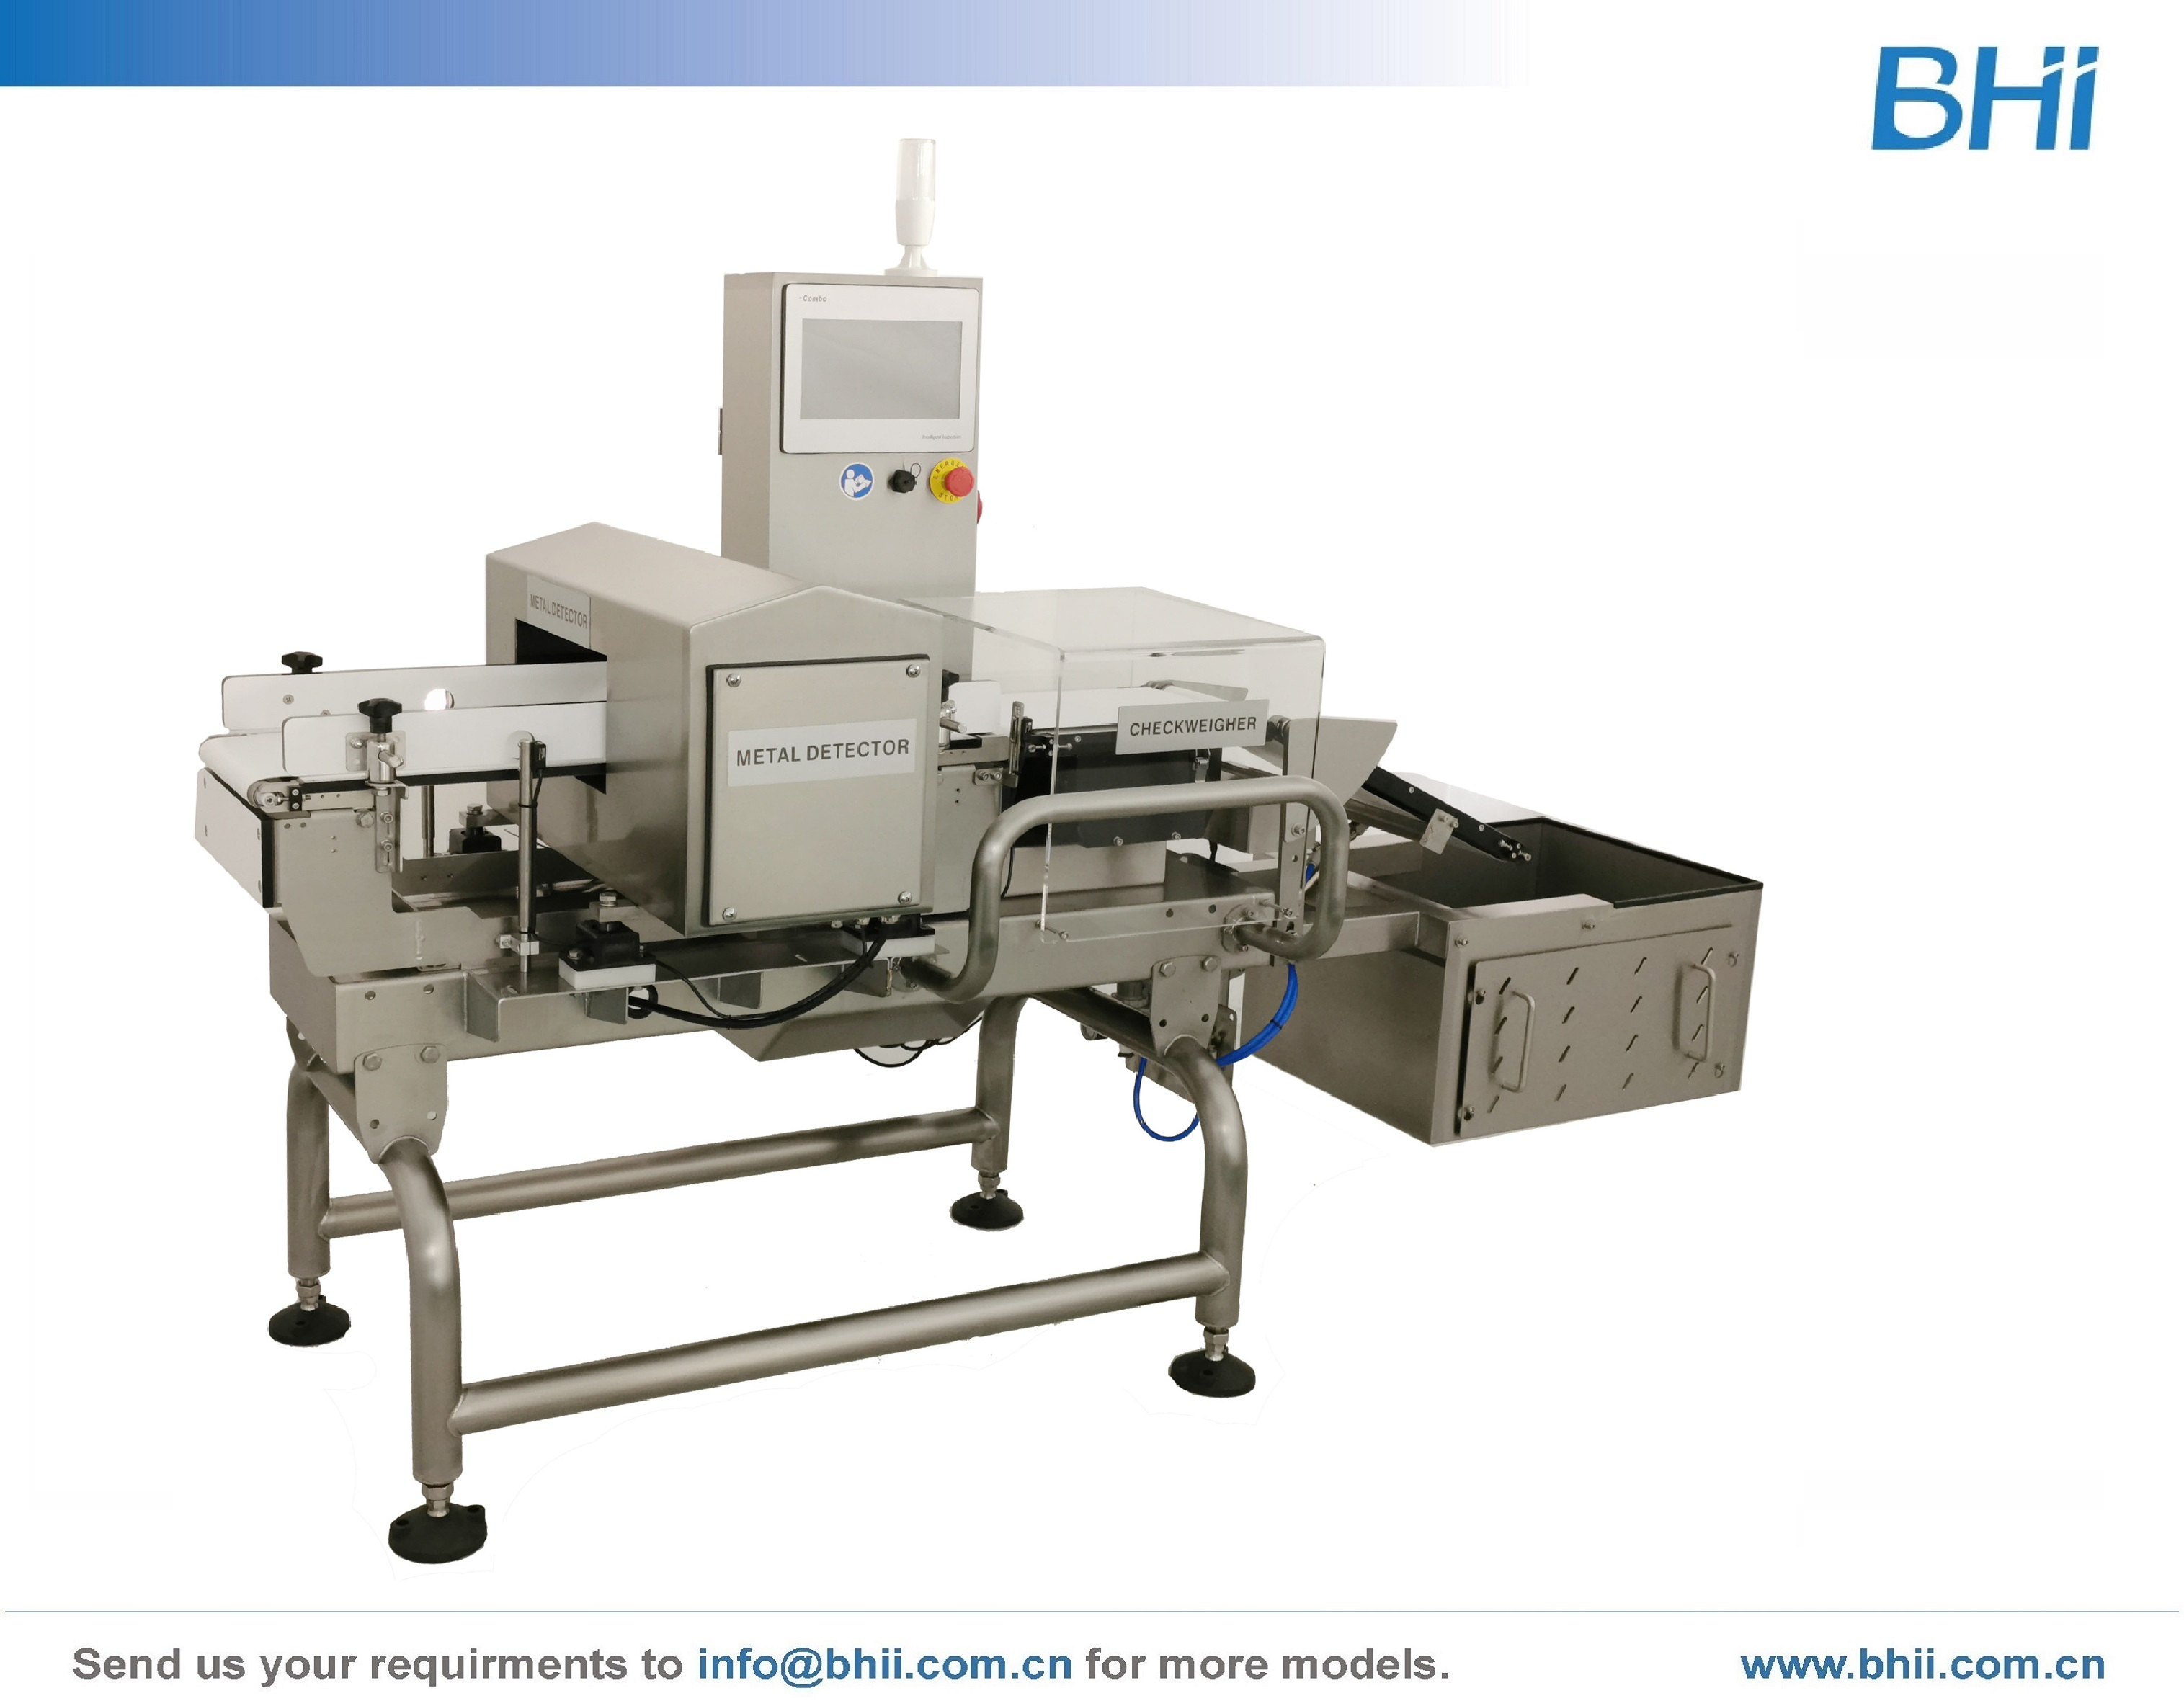 Combo - Checkweigher with Metal Detector